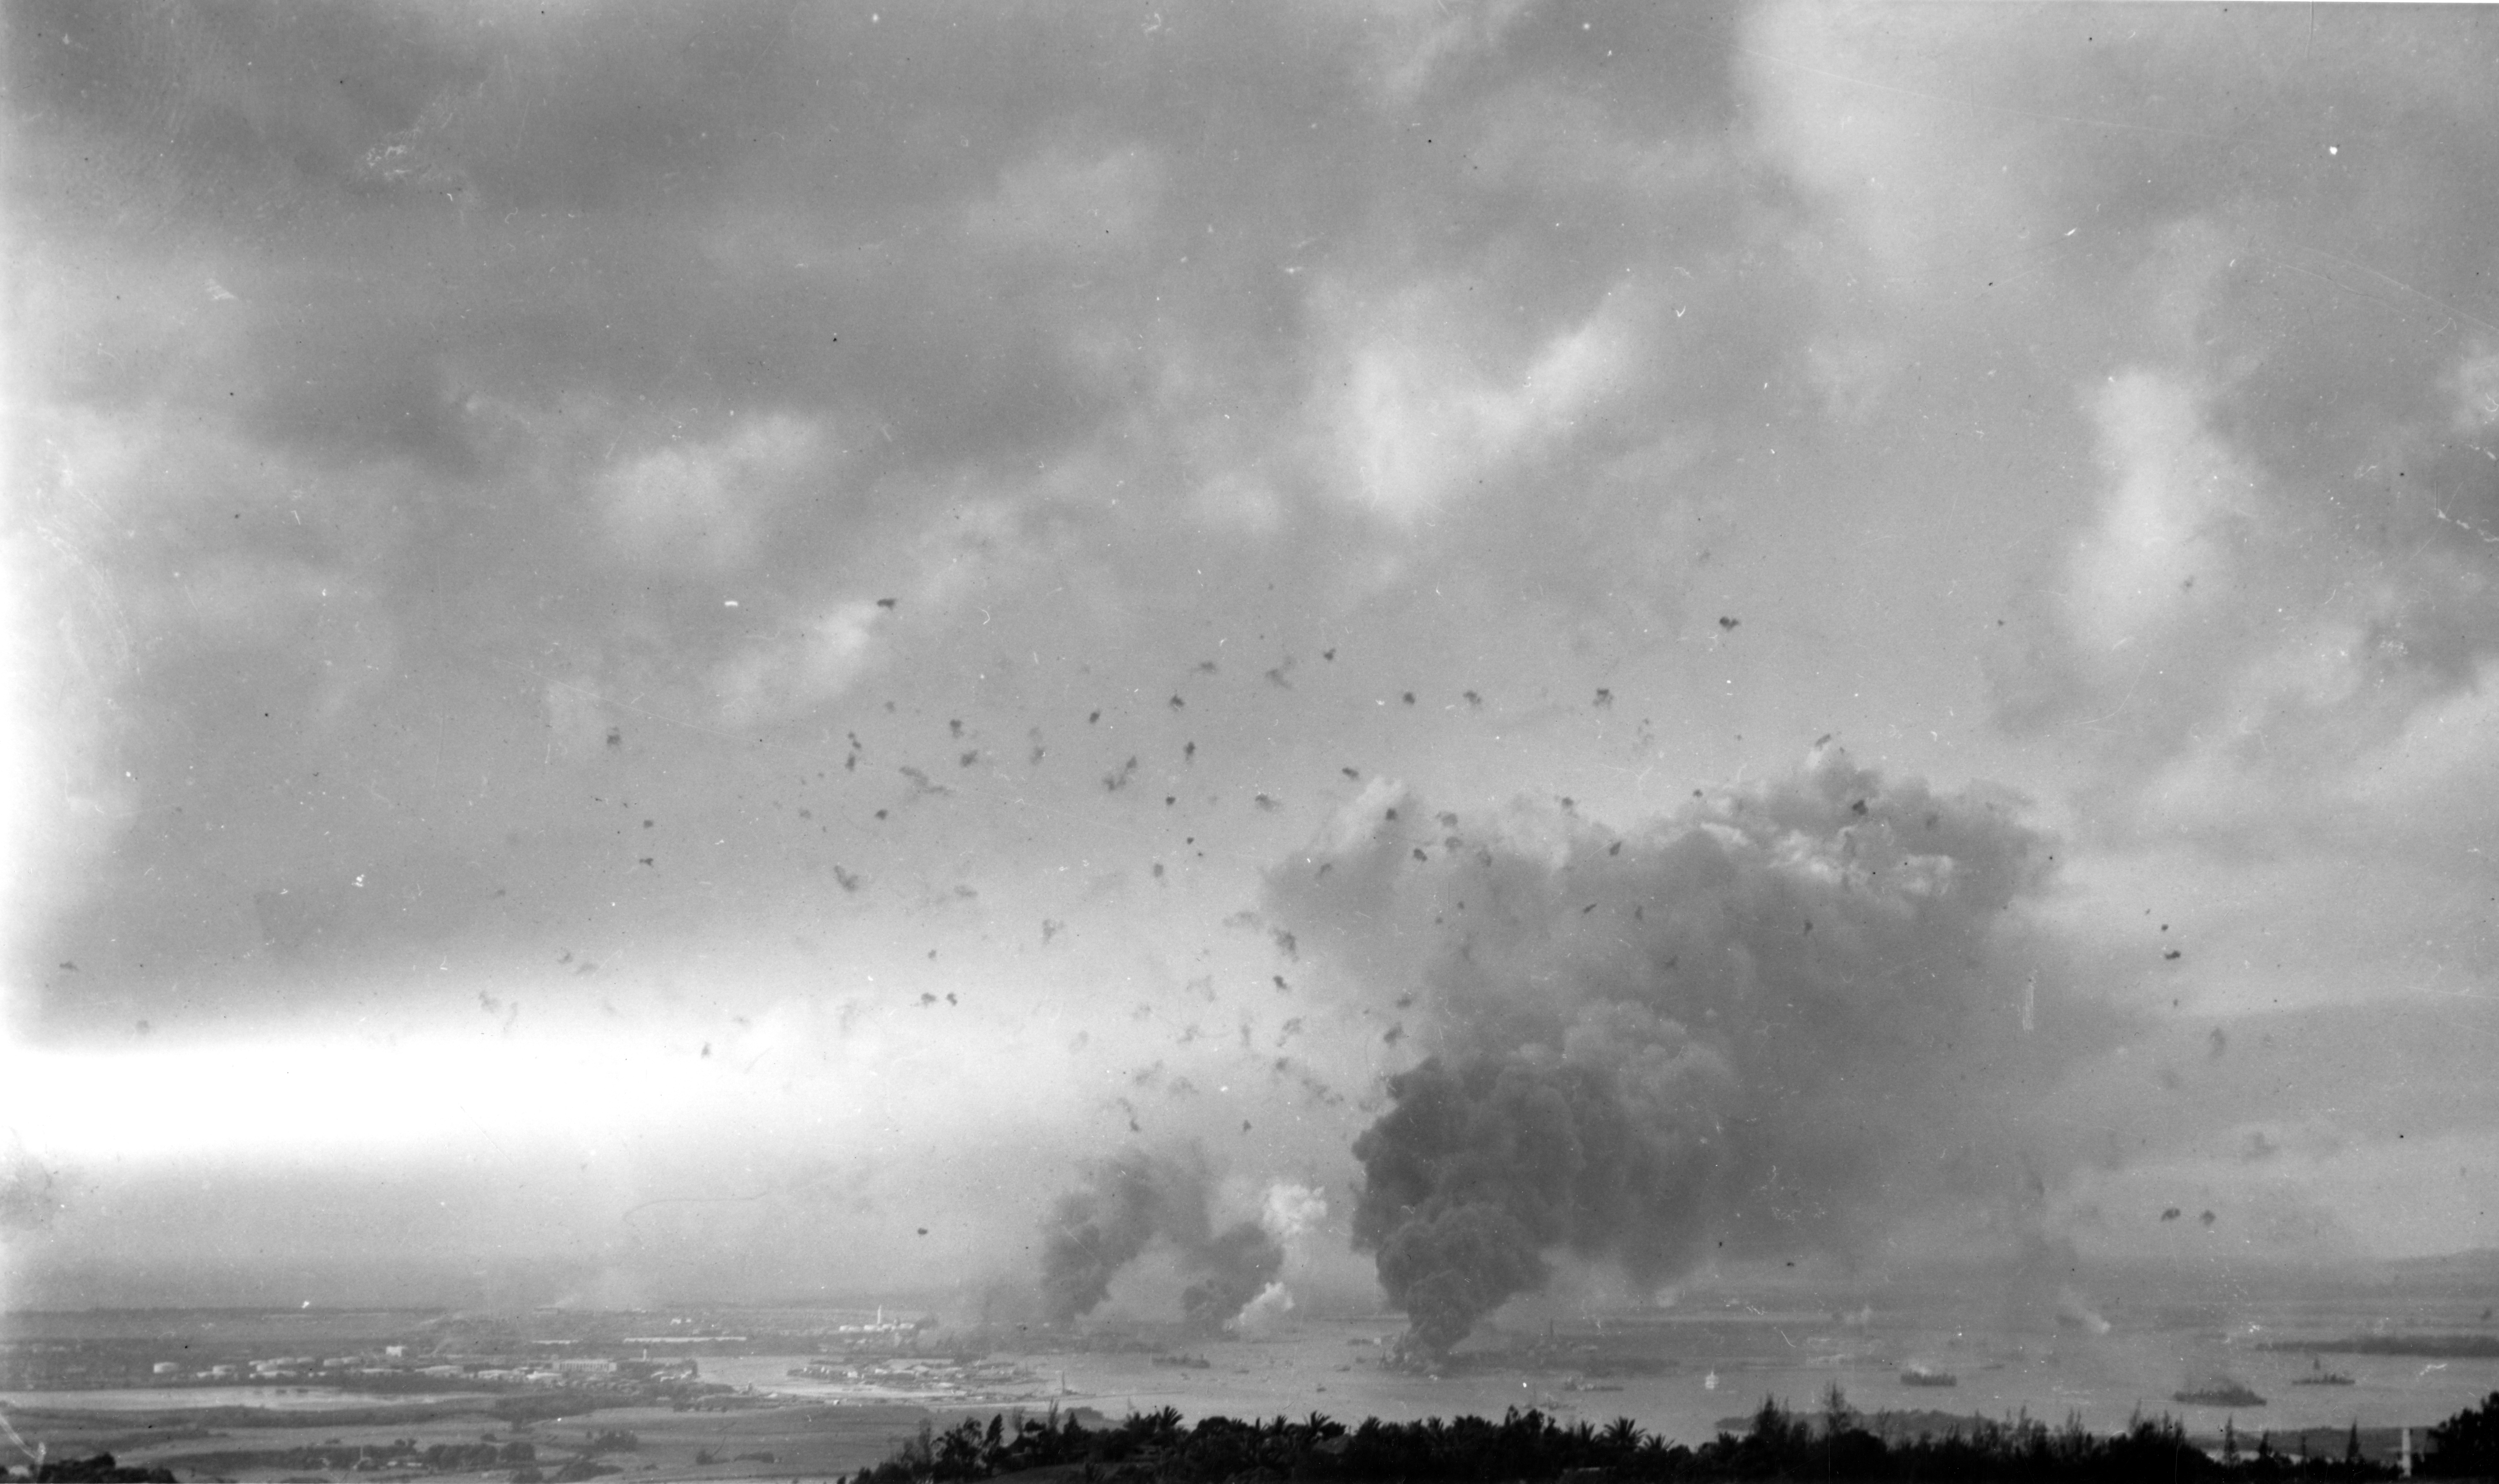 Photo of Anti-aircraft shell bursts blot the sky